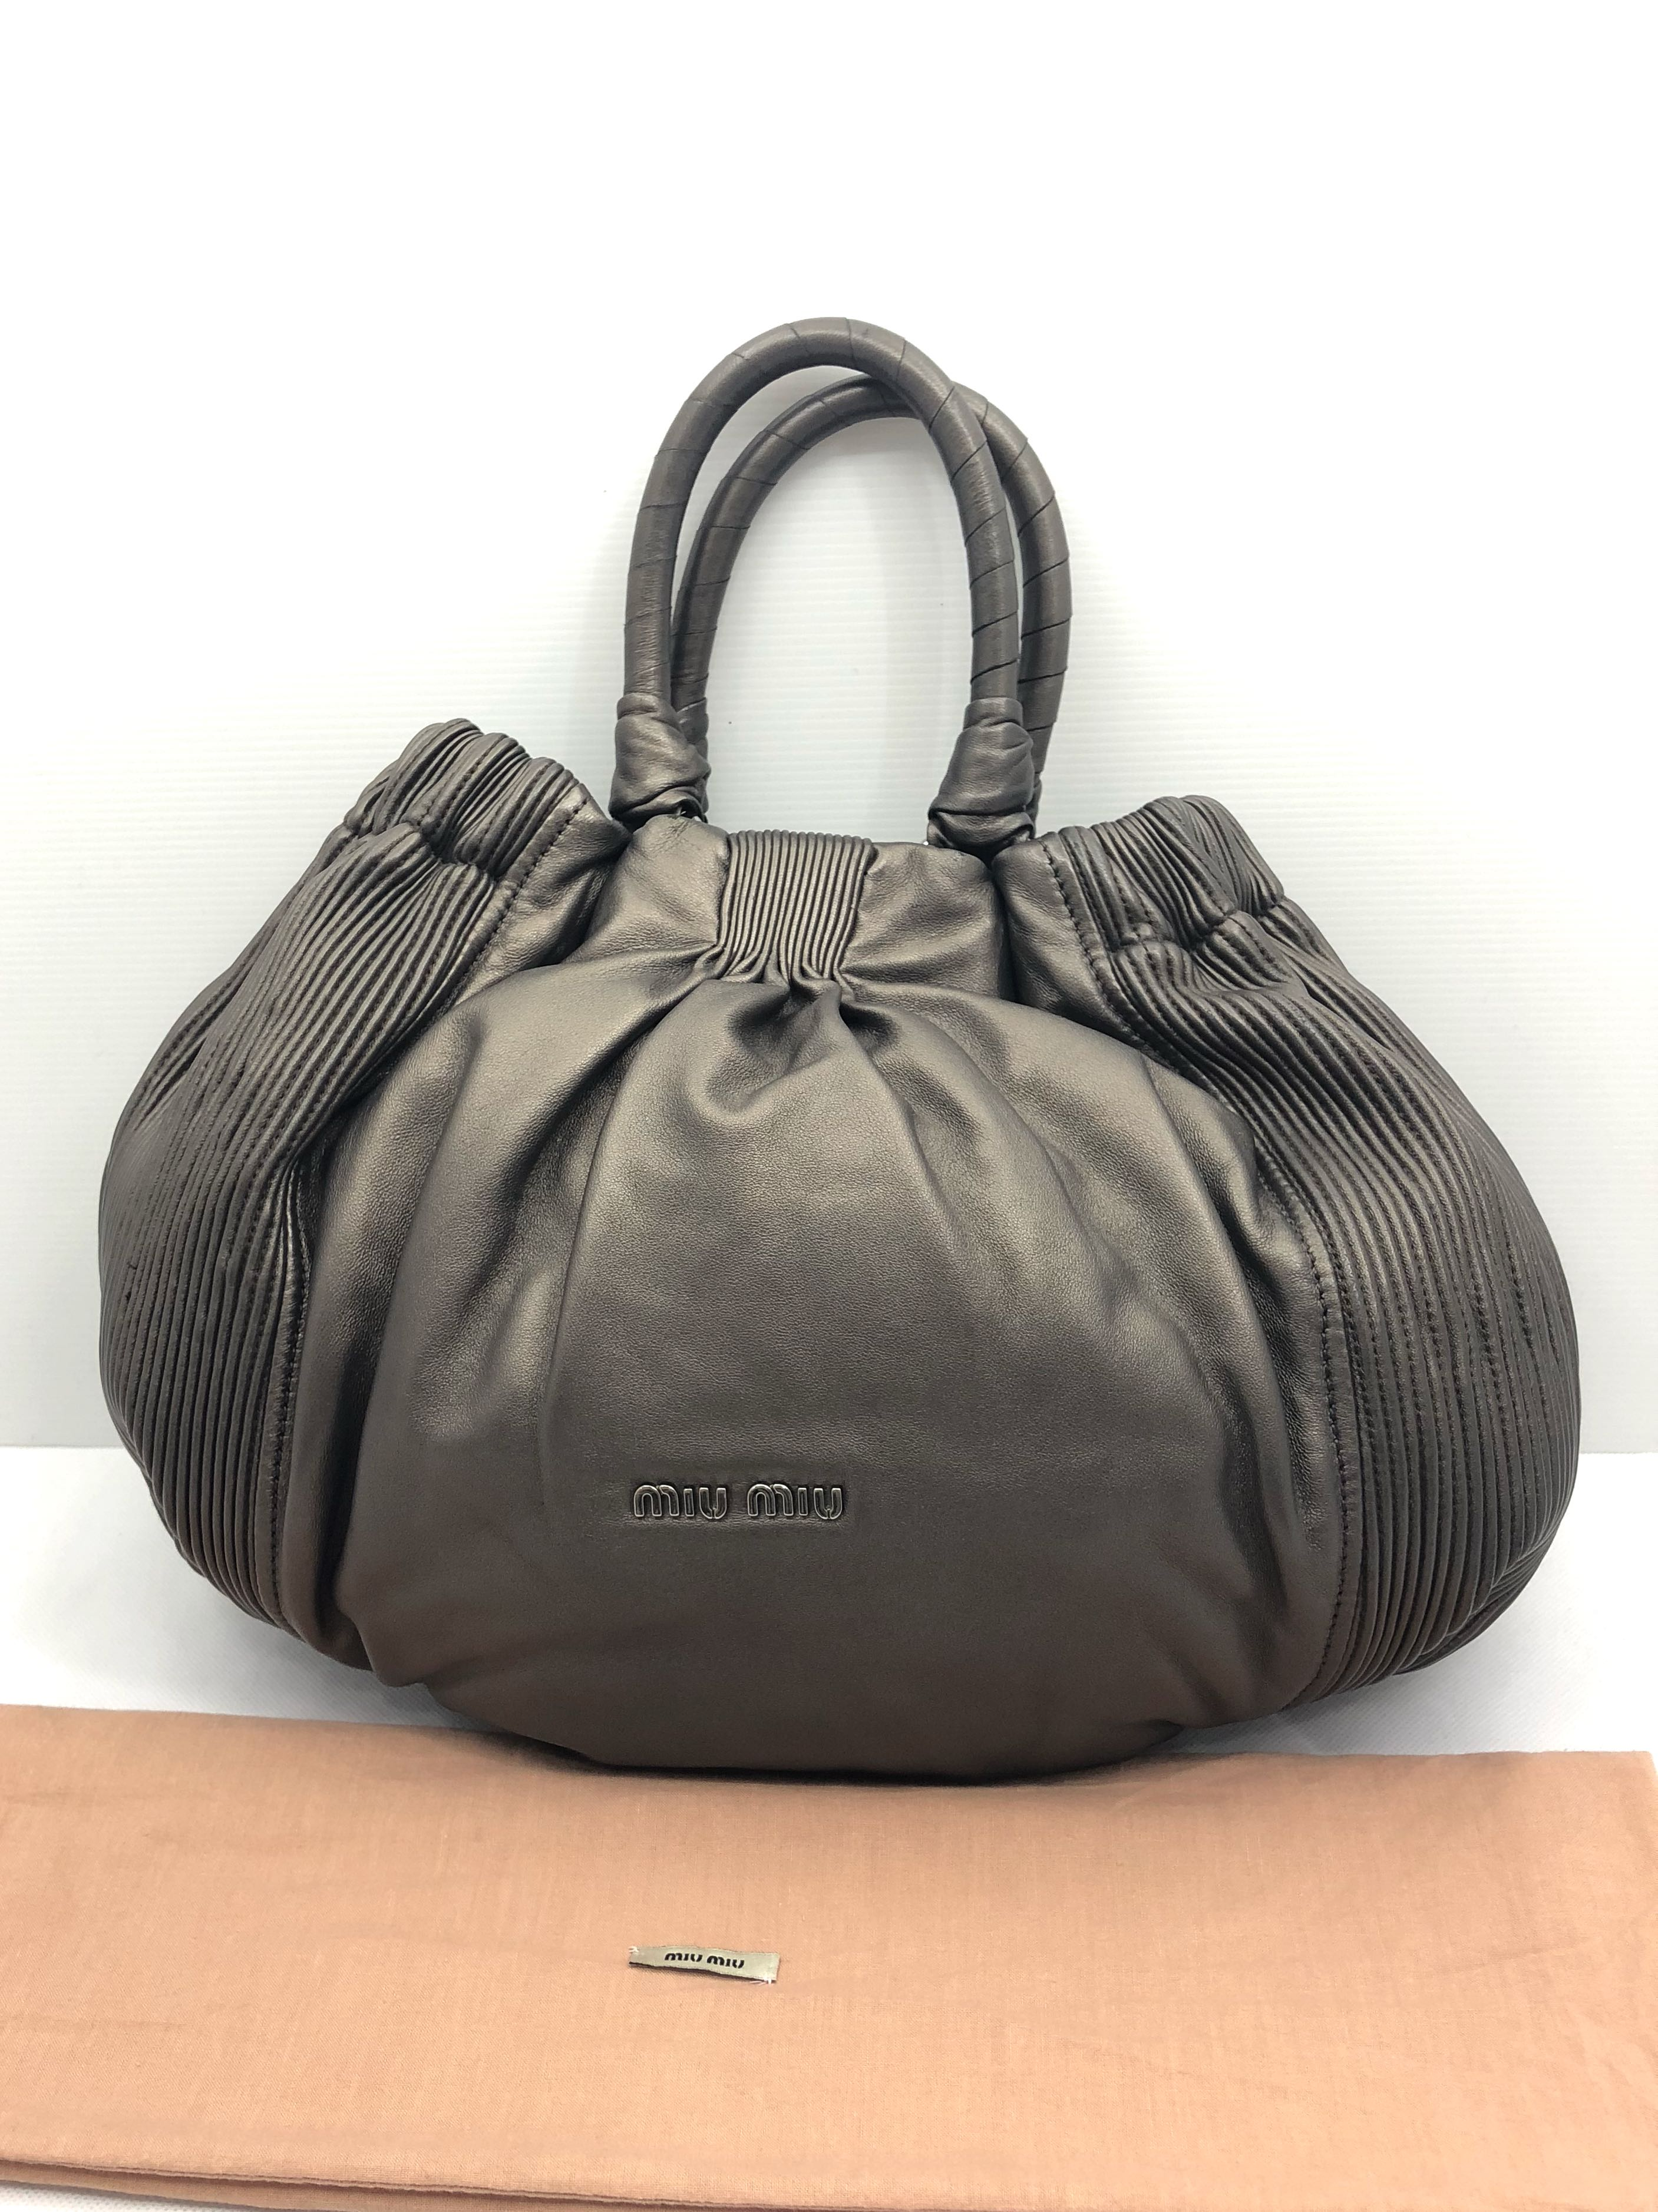 0706db1c2a54 miumiu leather hang bag 187002292